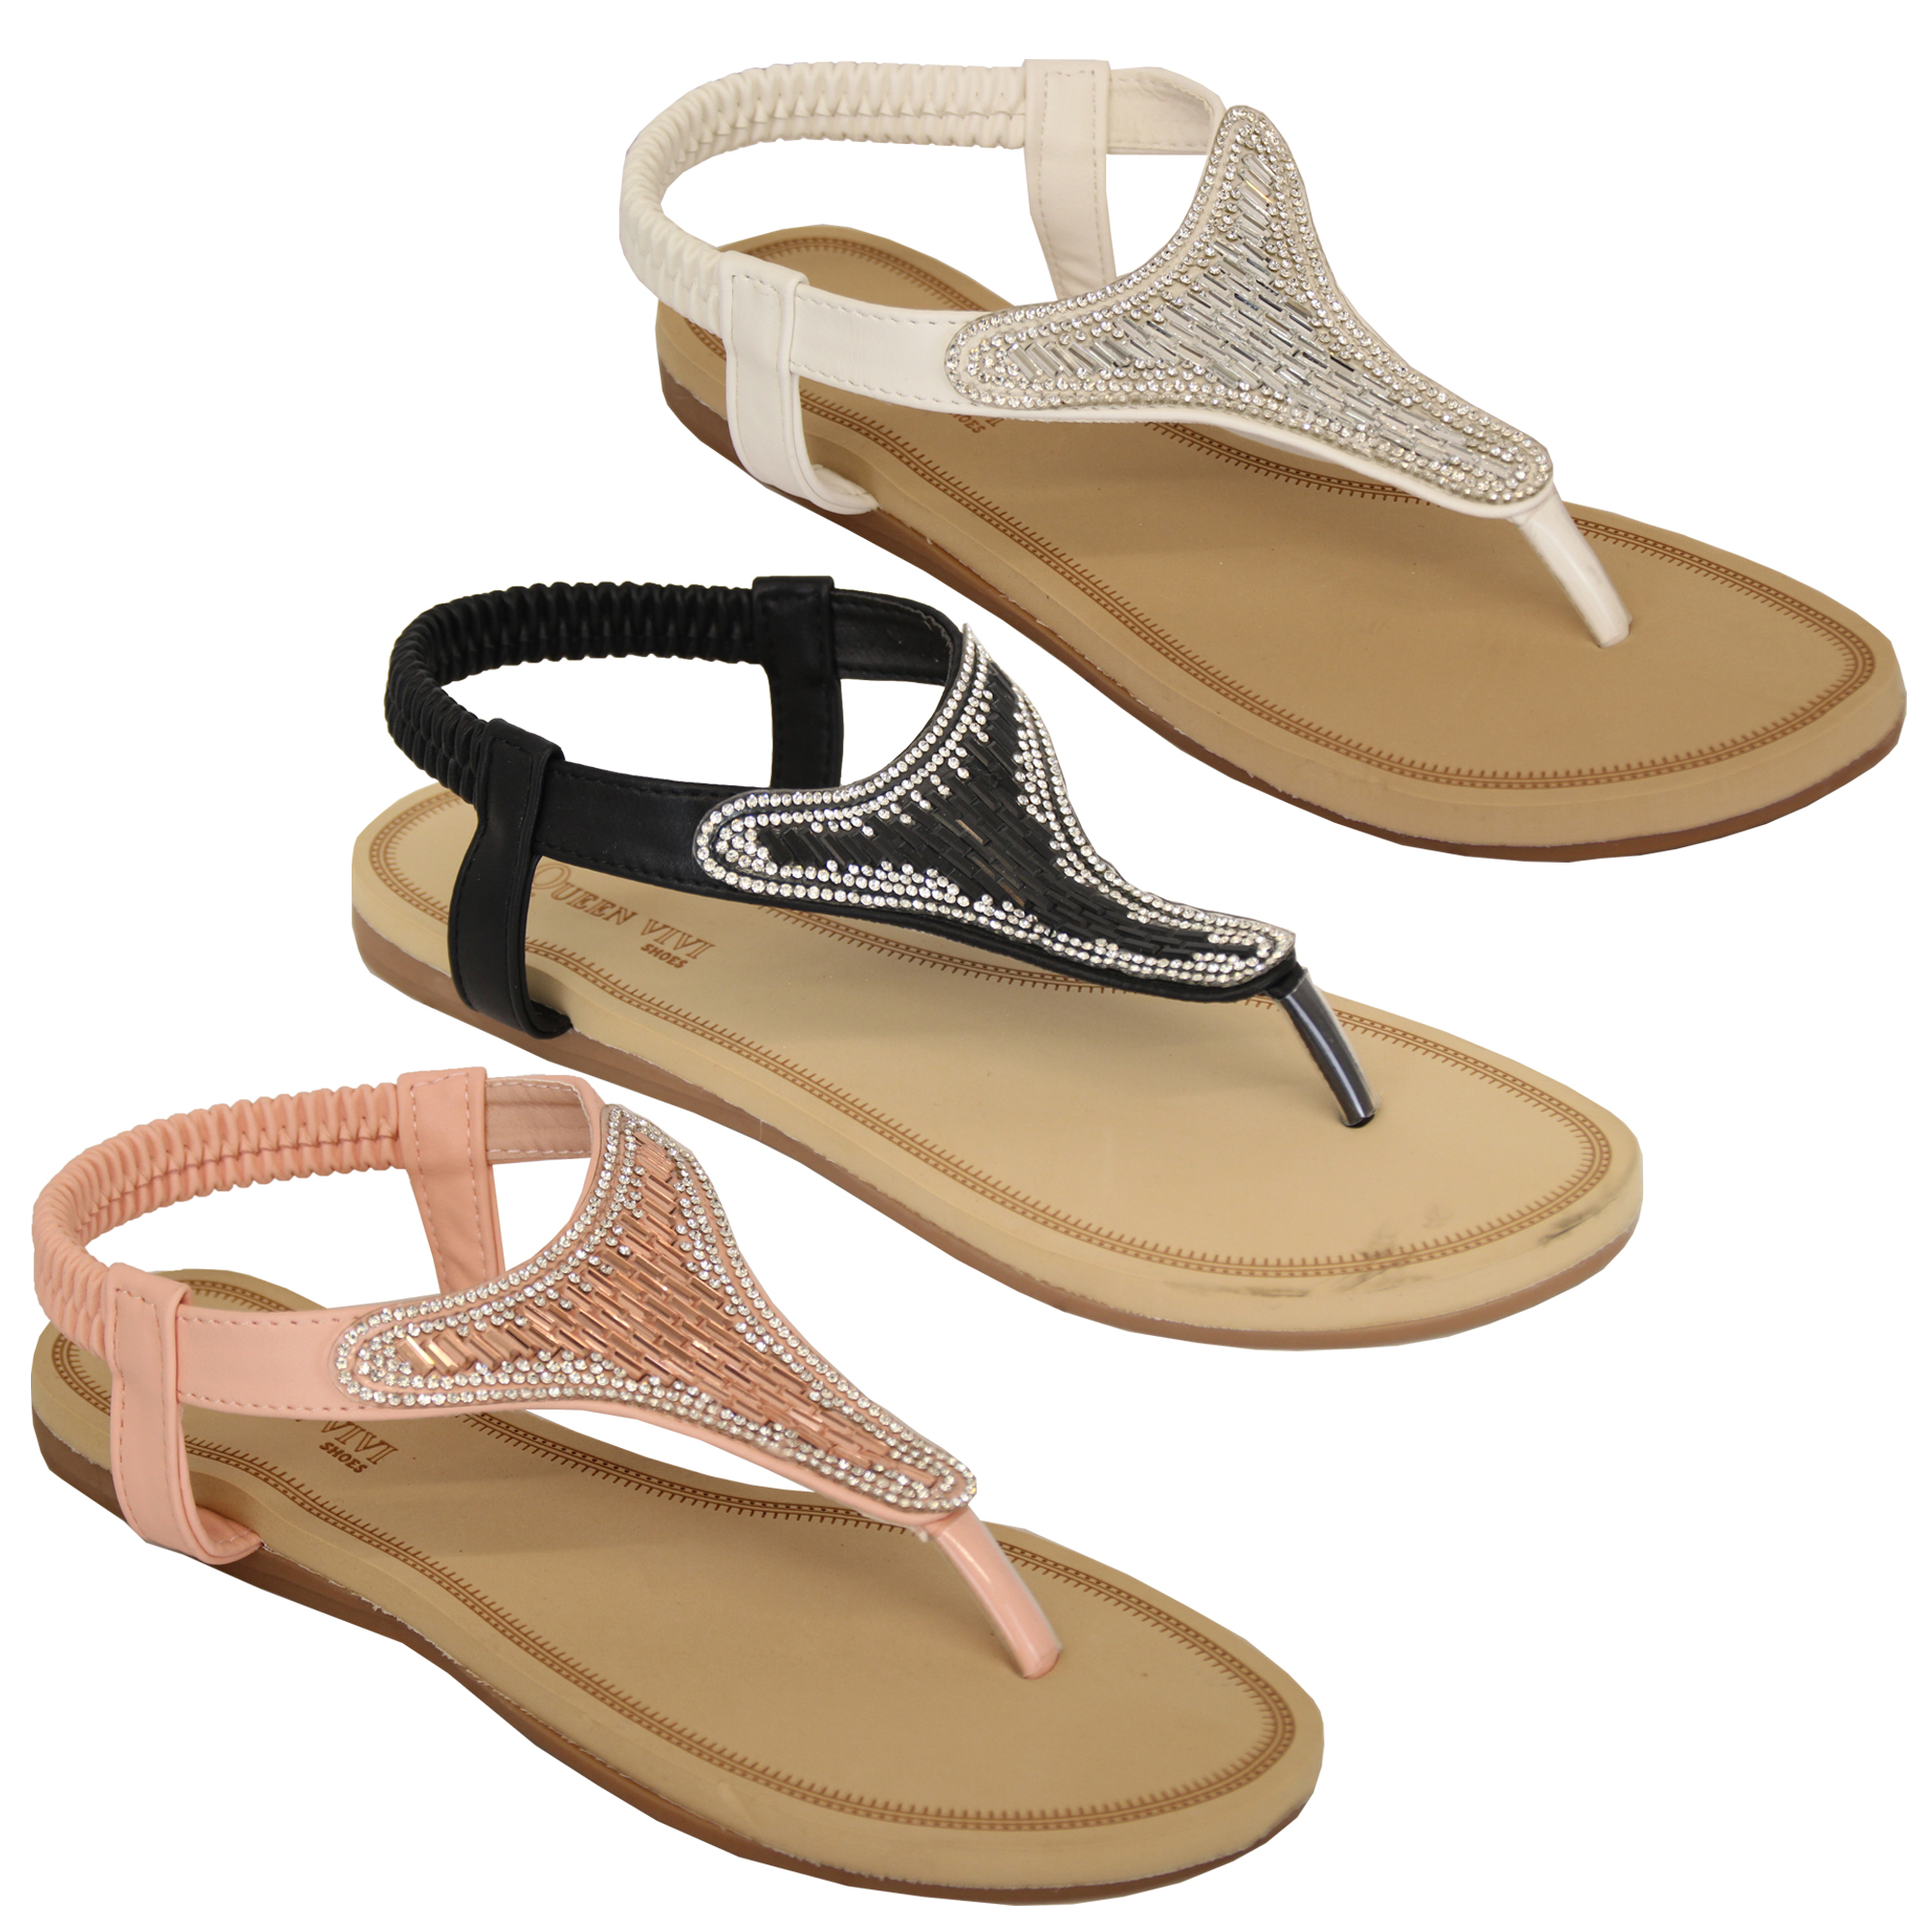 Ladies-Diamante-Sandals-Womens-Slip-On-Toe-Post-Shoes-Party-Wedding-Fashion-New thumbnail 10